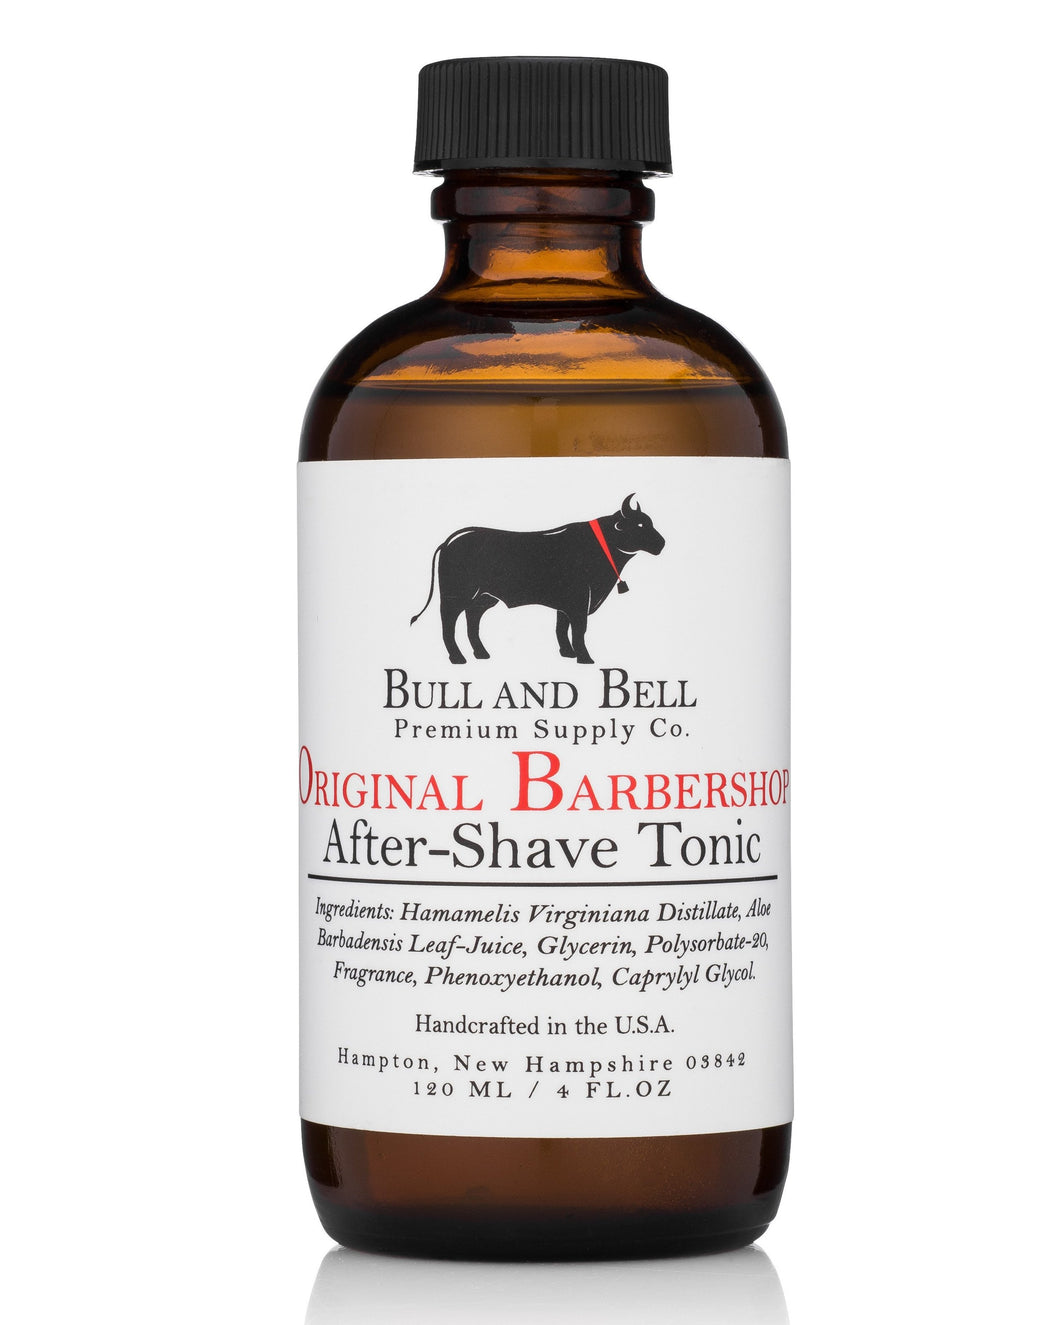 Original Barbershop Shave Tonic